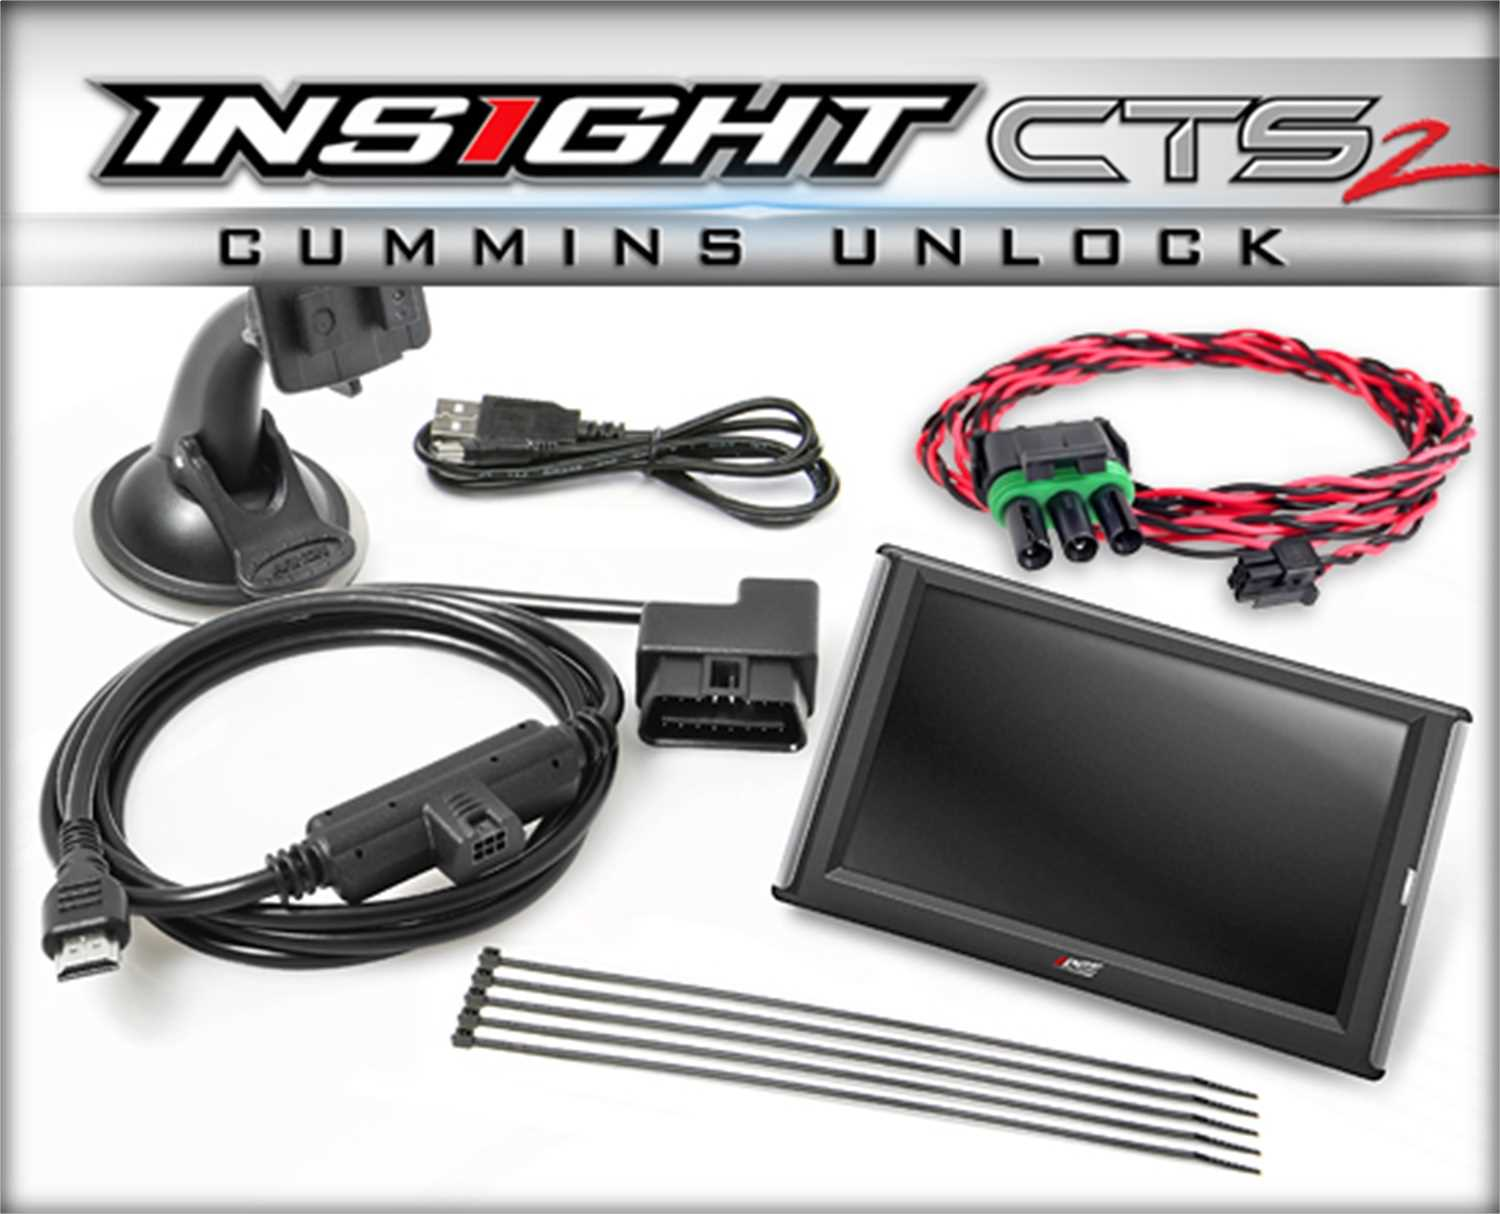 Edge Products Insight CTS2 Monitor 84132